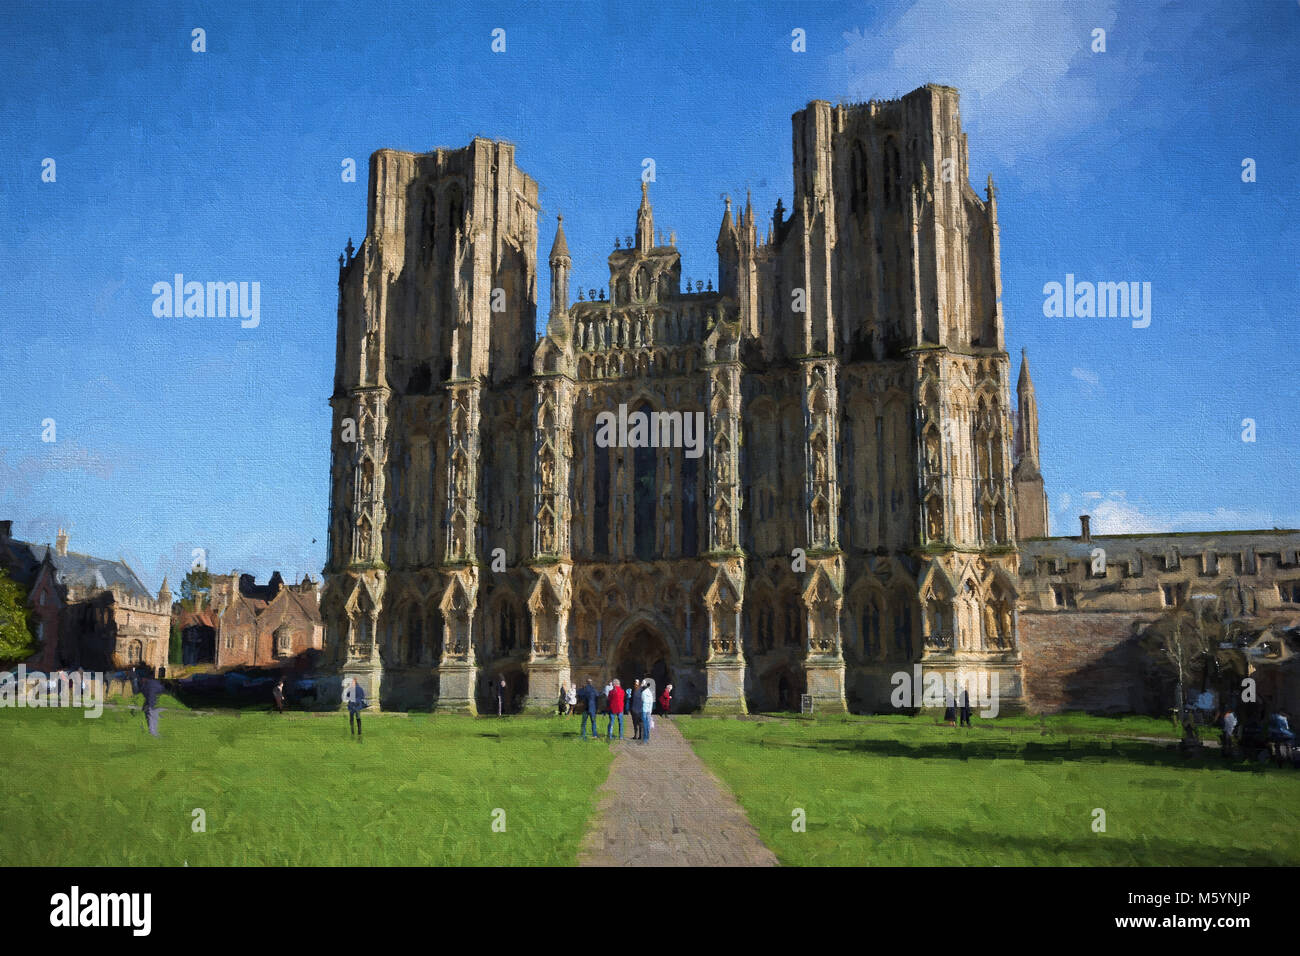 Wells Cathedral Somerset historic English building illustration like oil painting - Stock Image